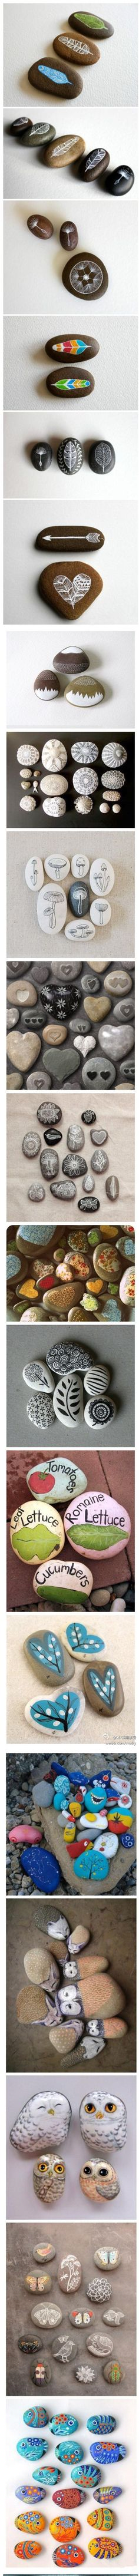 Collect rocks on vacation and paint some memorable sights/activities?